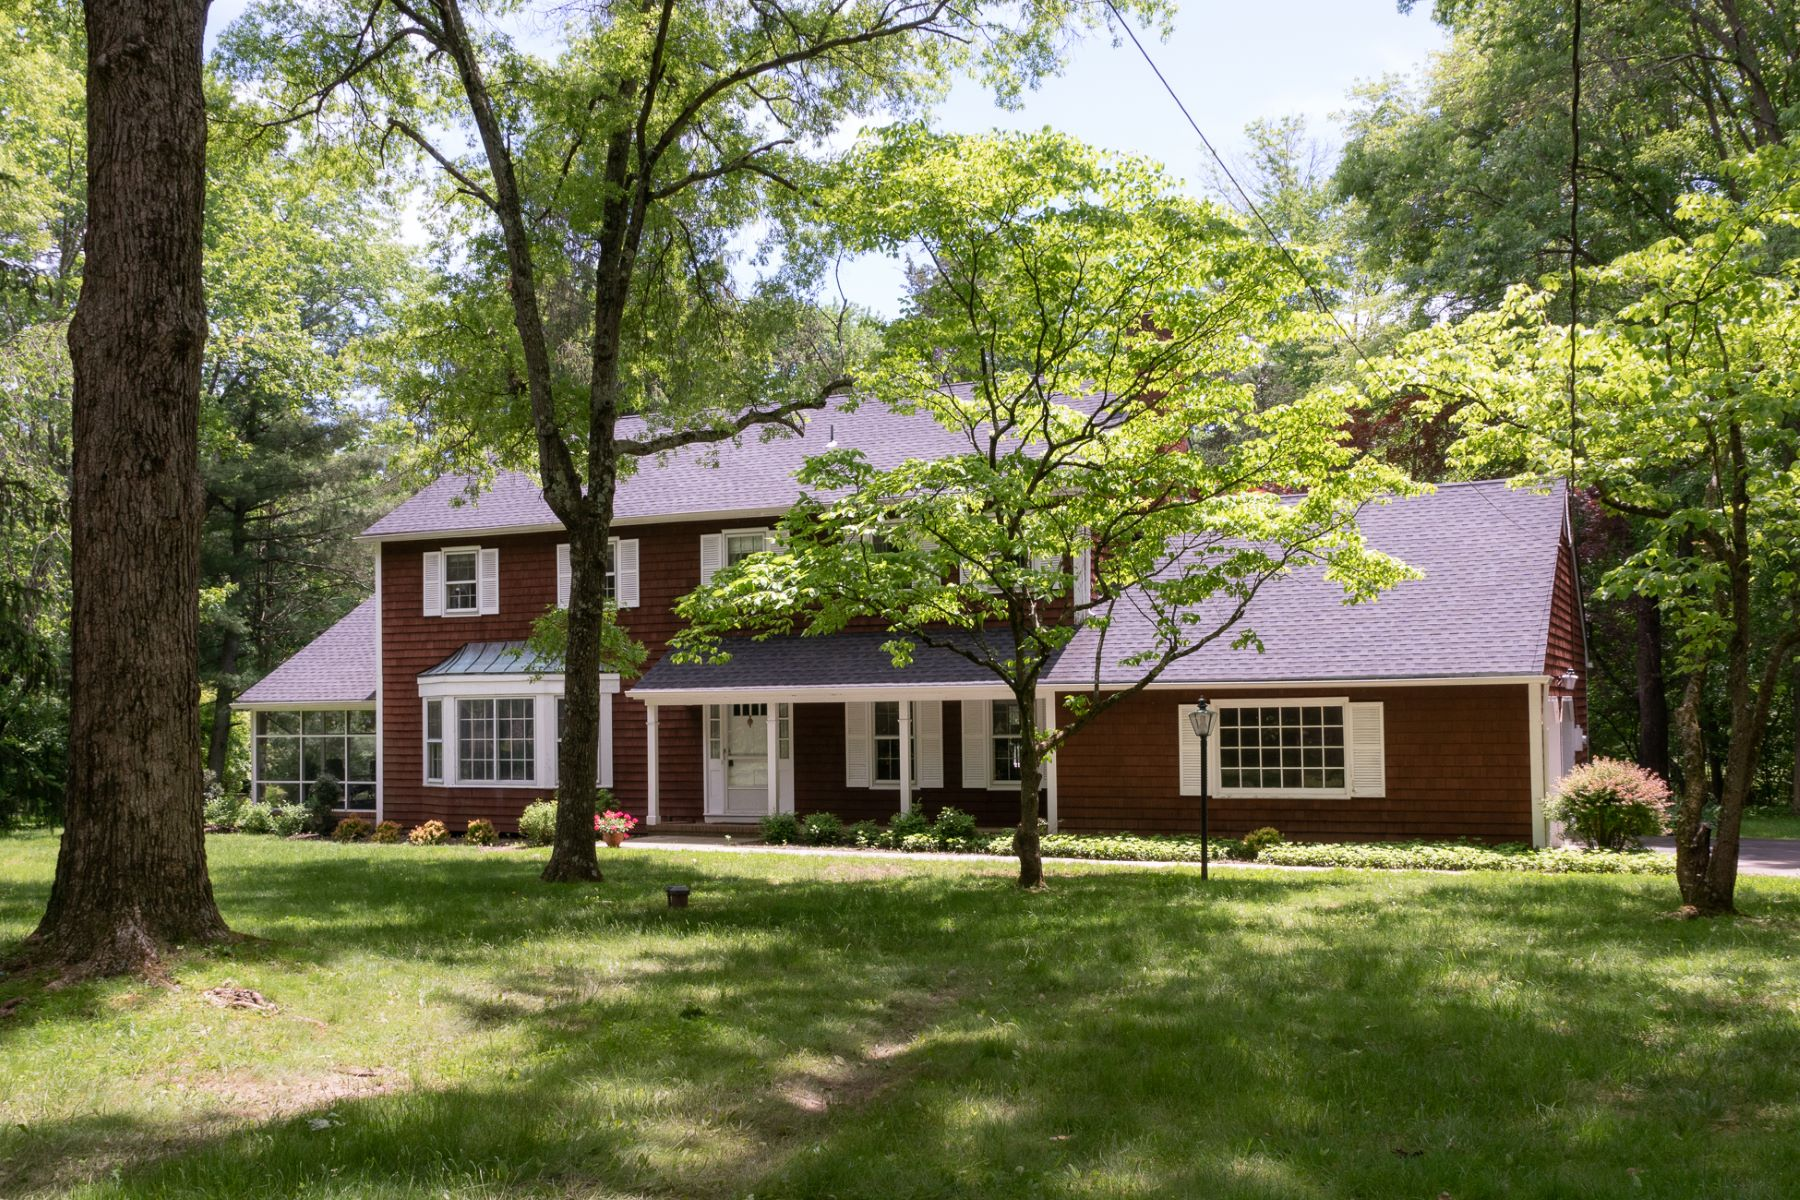 single family homes for Sale at Sprawling Old Elm Ridge Gem Waiting for New Owner 11 Honey Lake Drive, Princeton, New Jersey 08540 United States